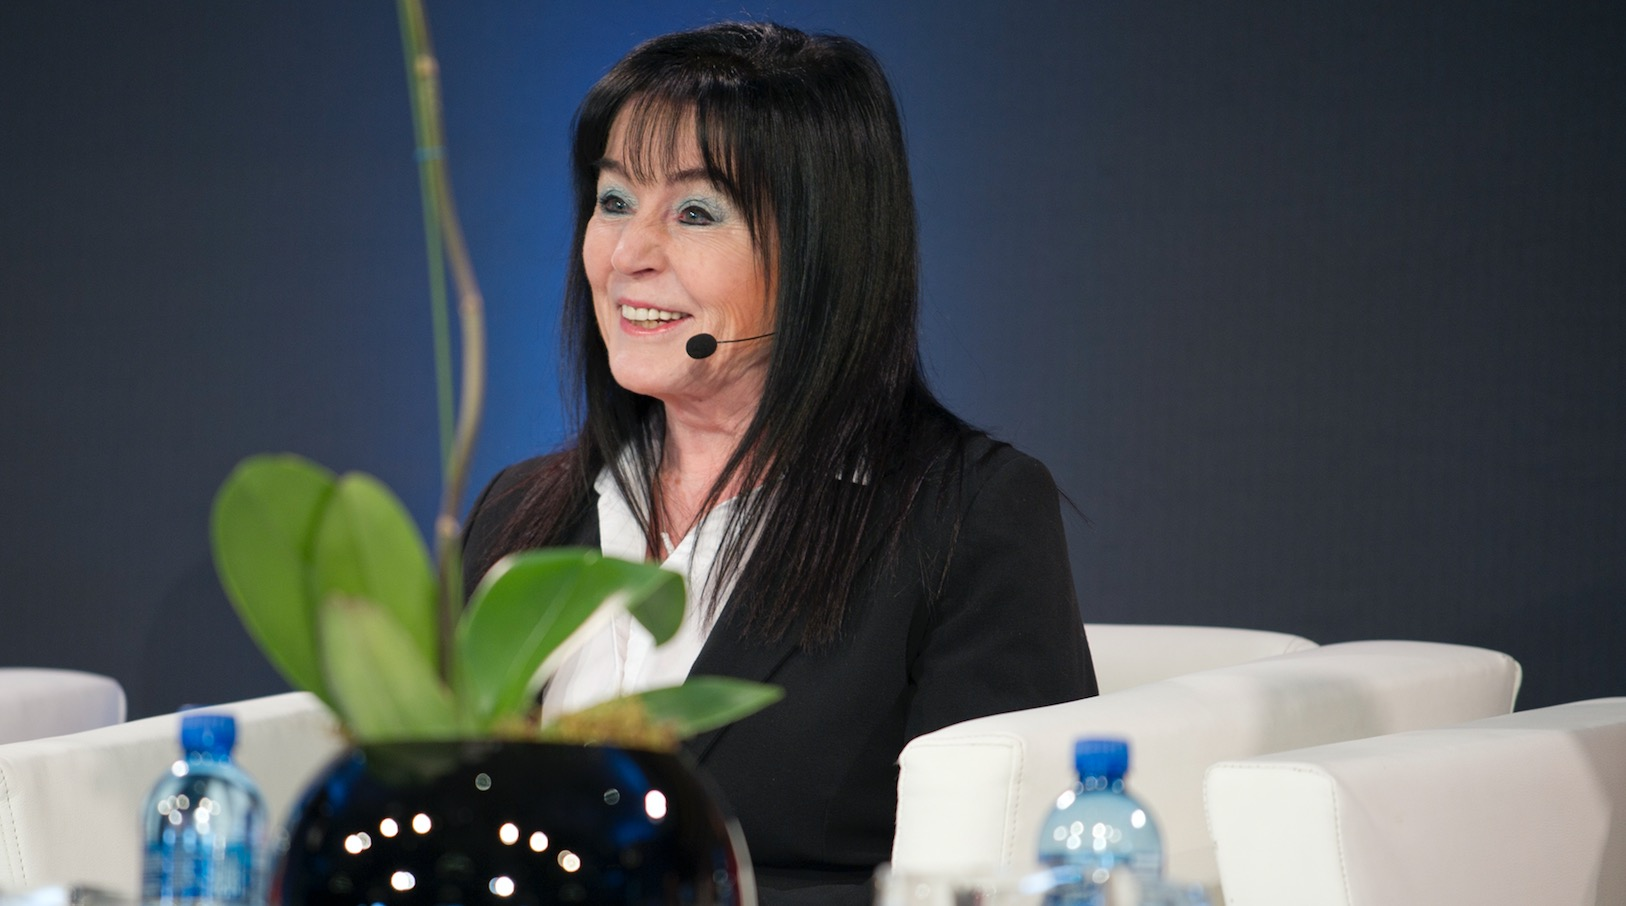 Angela Dick , founder and ceo of Transman, South Africa